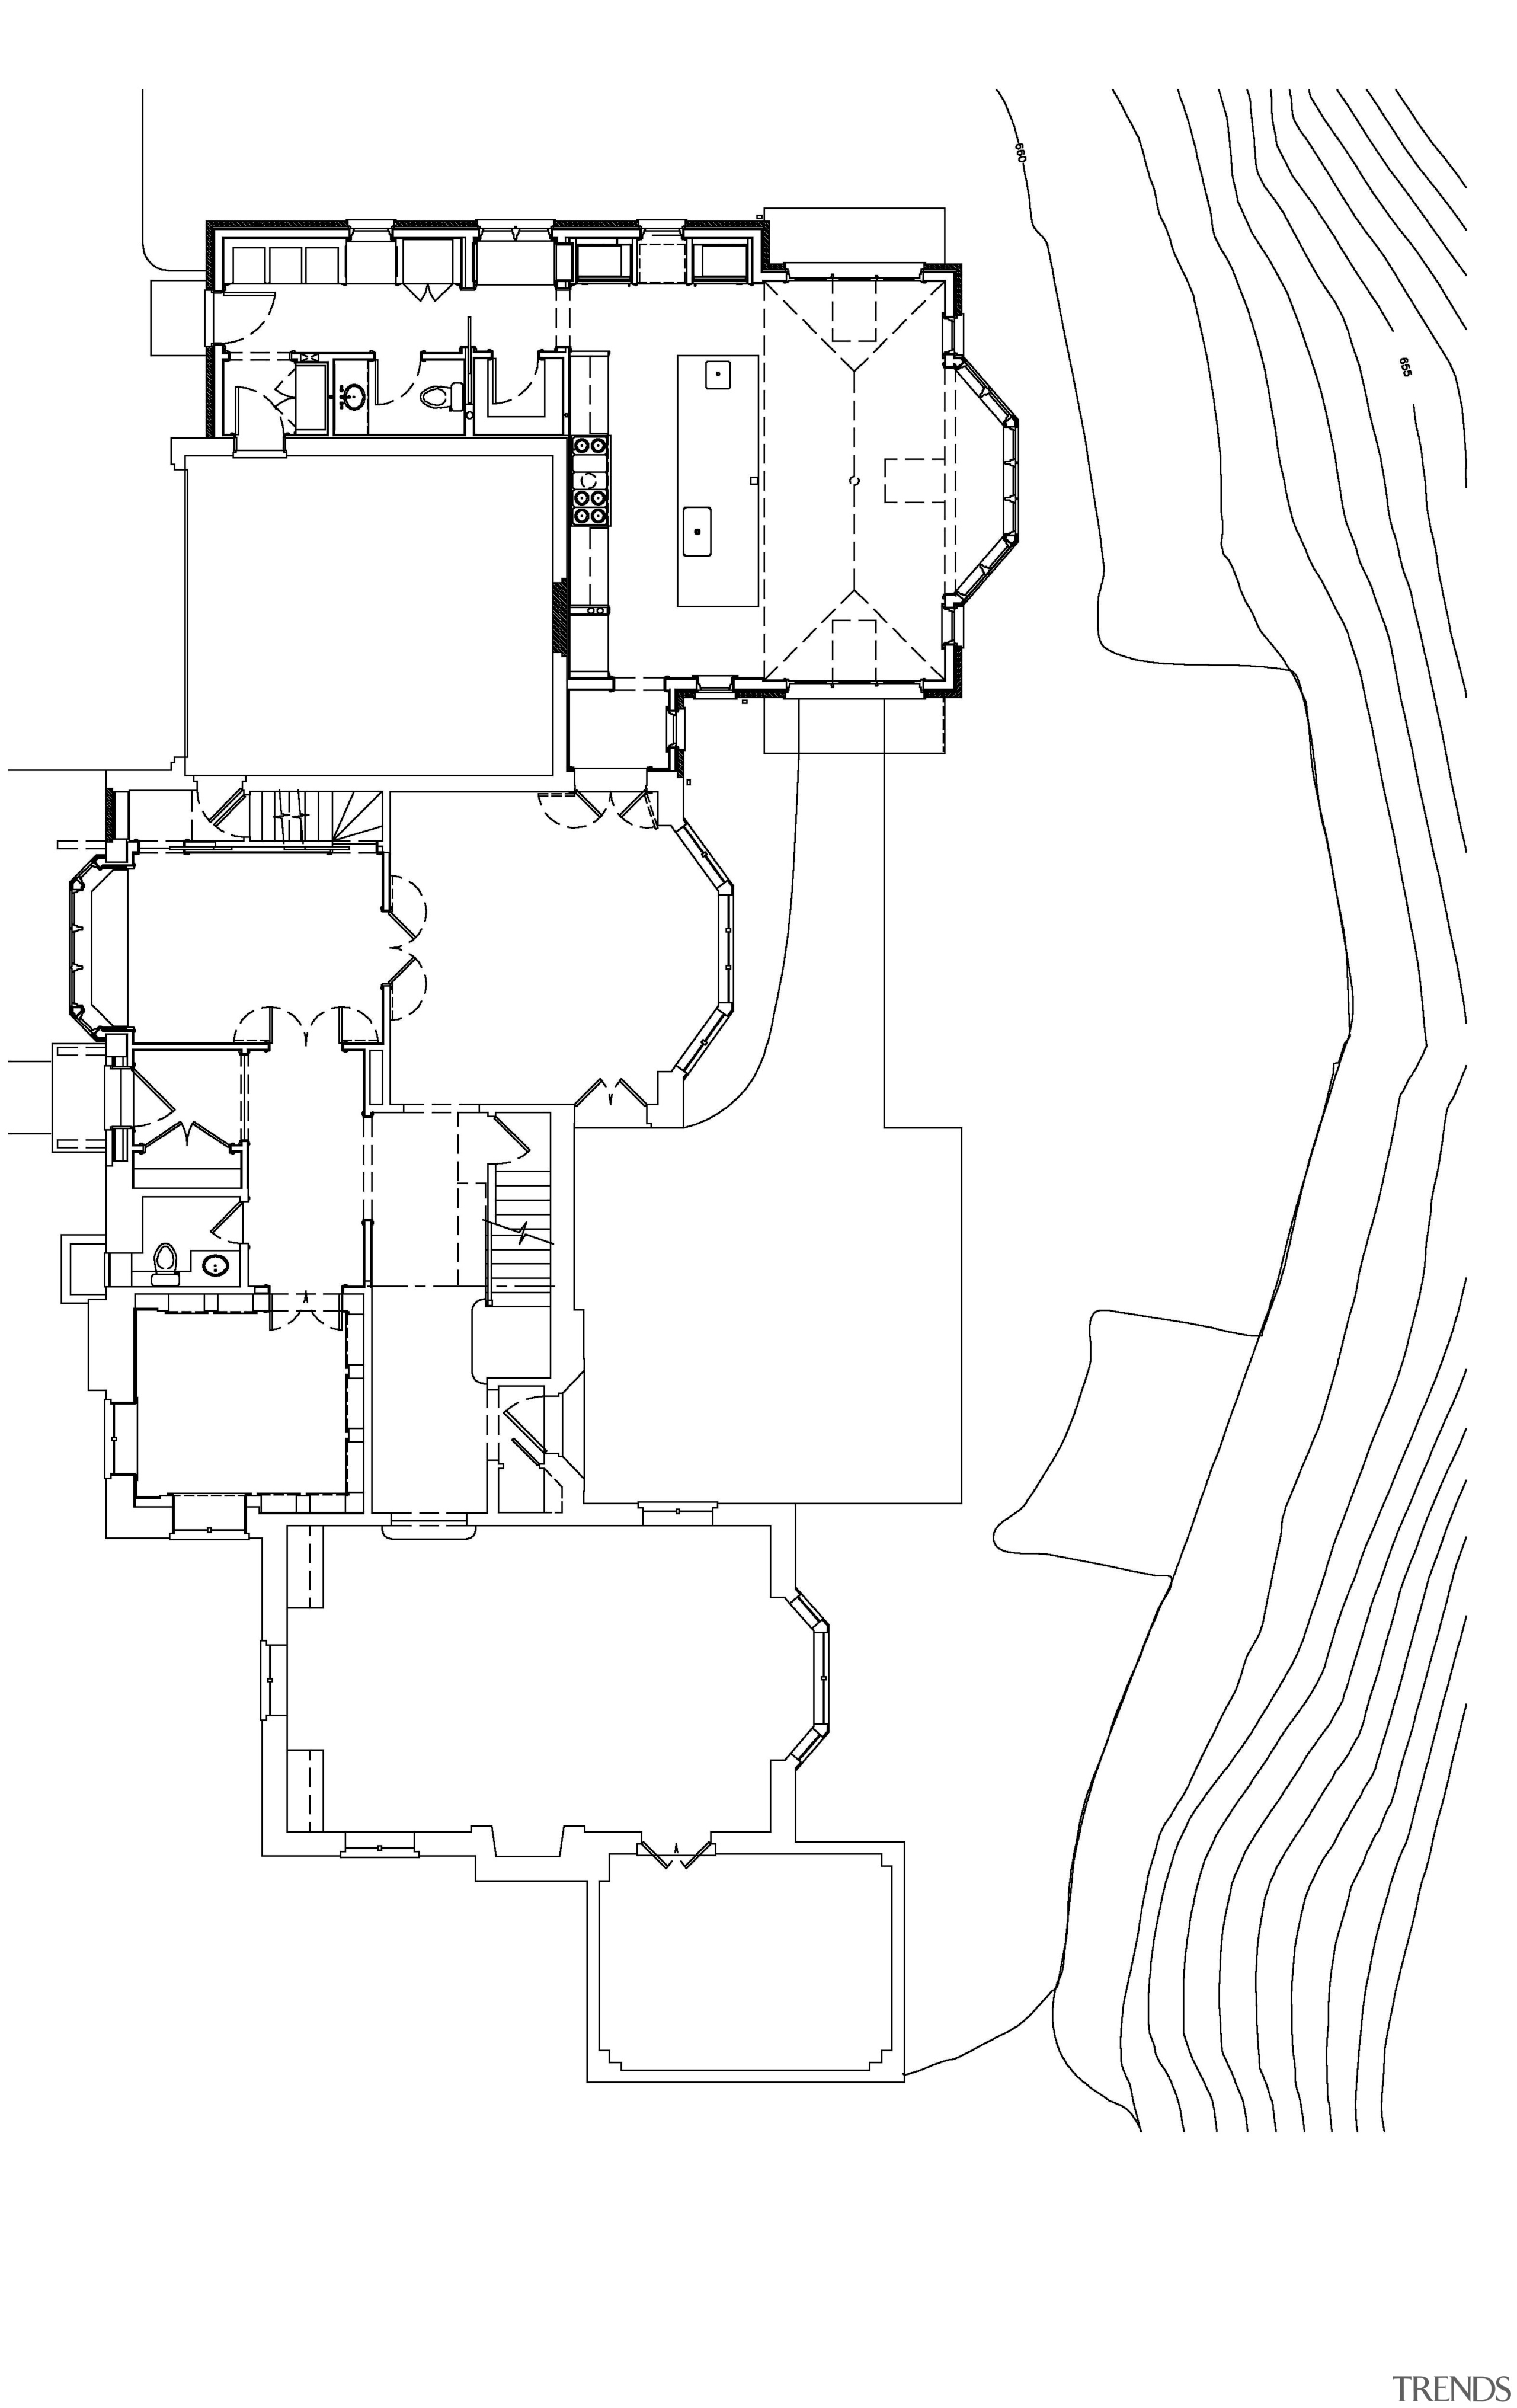 Kitchen and breakfast room extension to large country area, artwork, black and white, design, diagram, drawing, font, line, line art, monochrome, product, product design, text, white